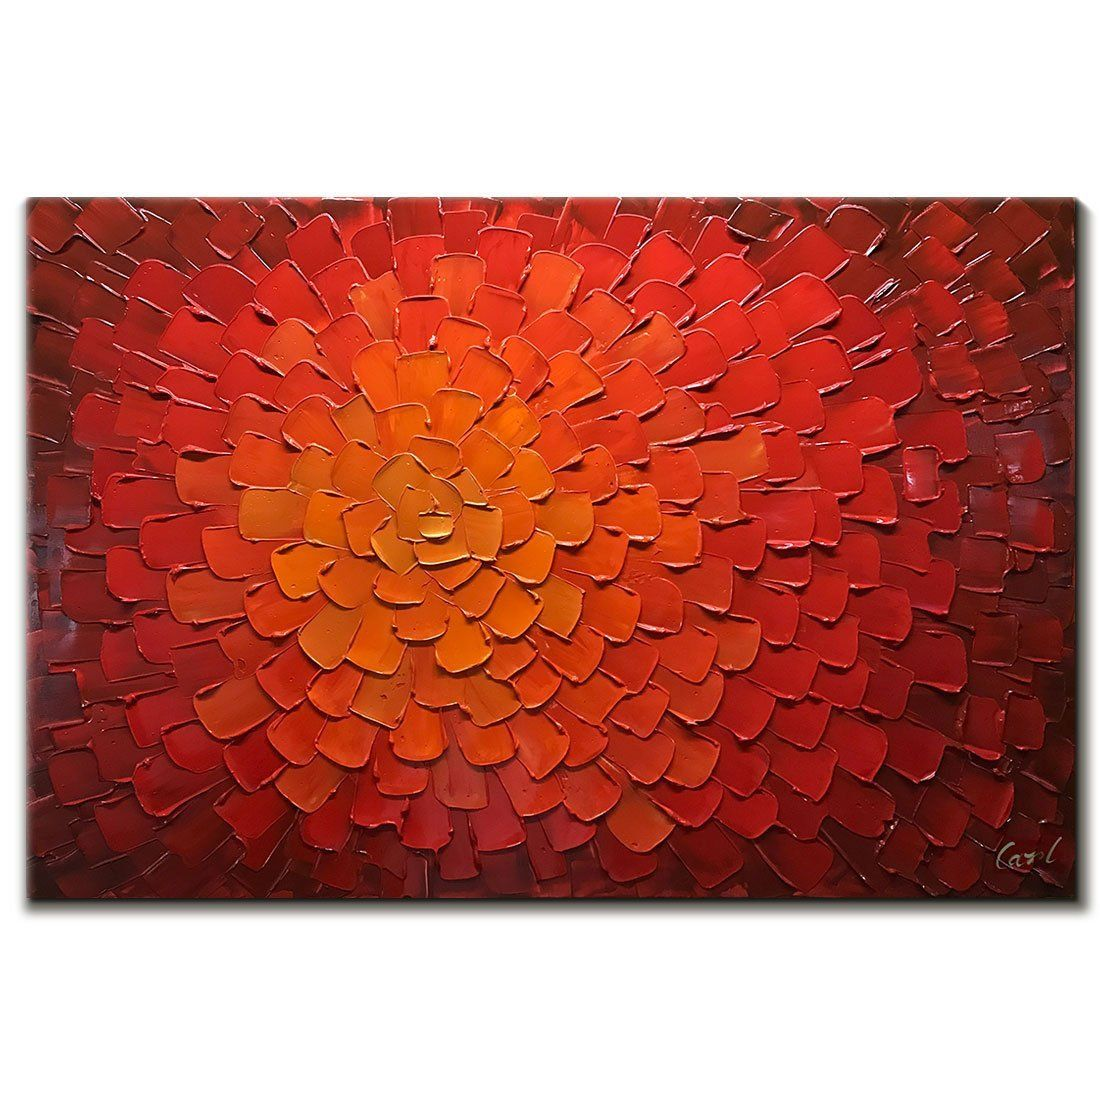 V Inspire Paintings 24x36 Inch Oil Hand Paintings Modern Framed Art 3d Hand Painted Abstract Artwork Red Flowers Pictures On Canvas Wall Art Ready To Hang For Living Room Bedroom Home Decorations Paintings Home